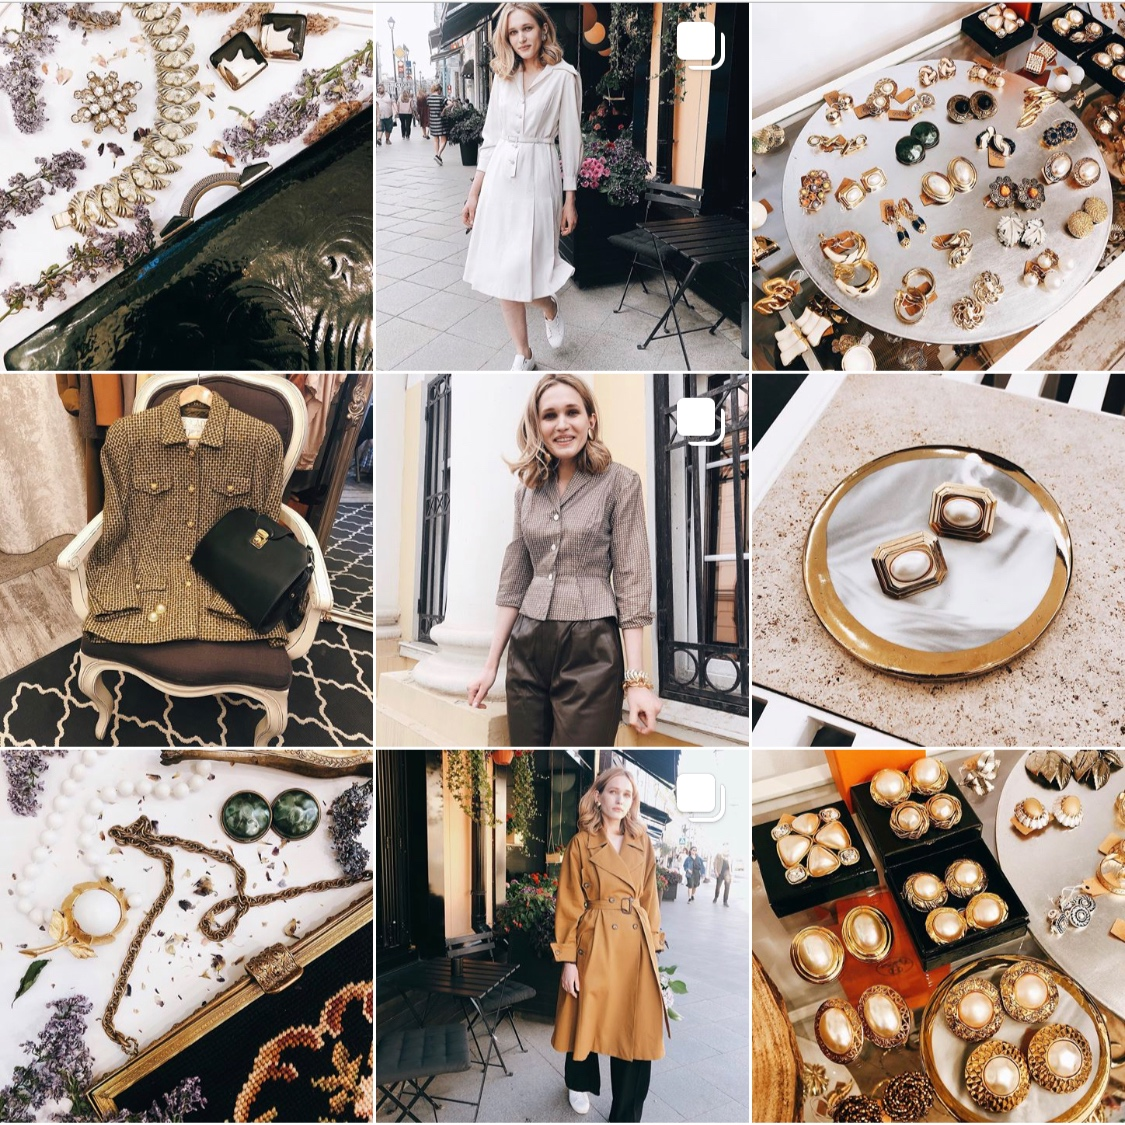 vintage heritage - Apparently I lived very close to this one! Thank god I didn't know about Vintage Heritage, otherwise I'd spend everything there and wouldn't have enough for pizza. The store has been open since 2014. Their collection consist of garments from France, Germany, Italy and the US. Veronica Agapova, the founder, says that 'vintage clothes help us treasure the past while making our personal stories'. Because clothes represent who we are. So make your story fabulous!